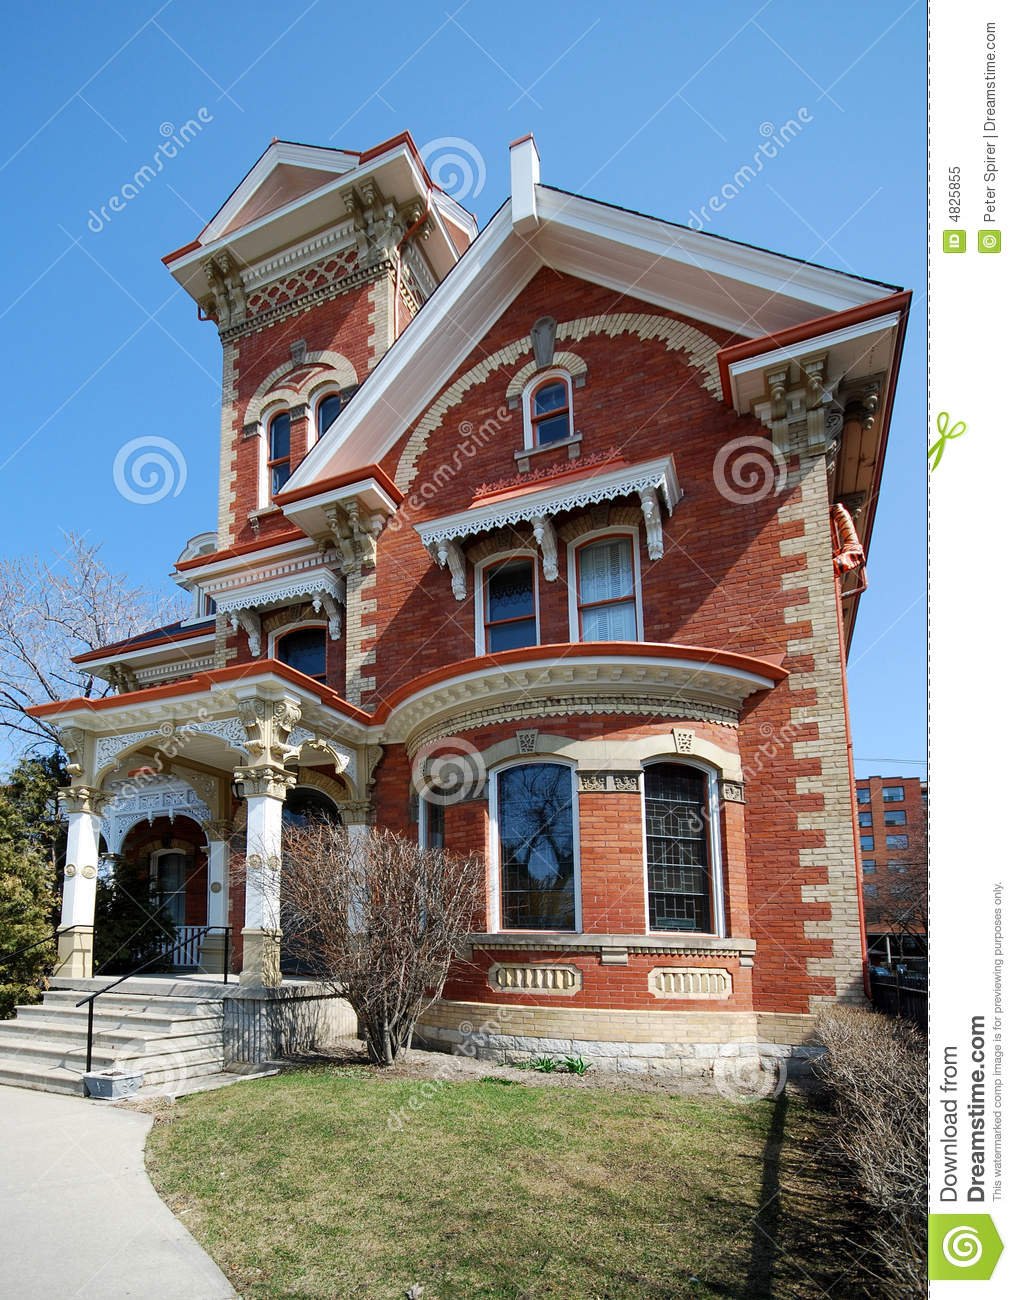 Ornate Victorian House Stock Image Image Of Tower Iron